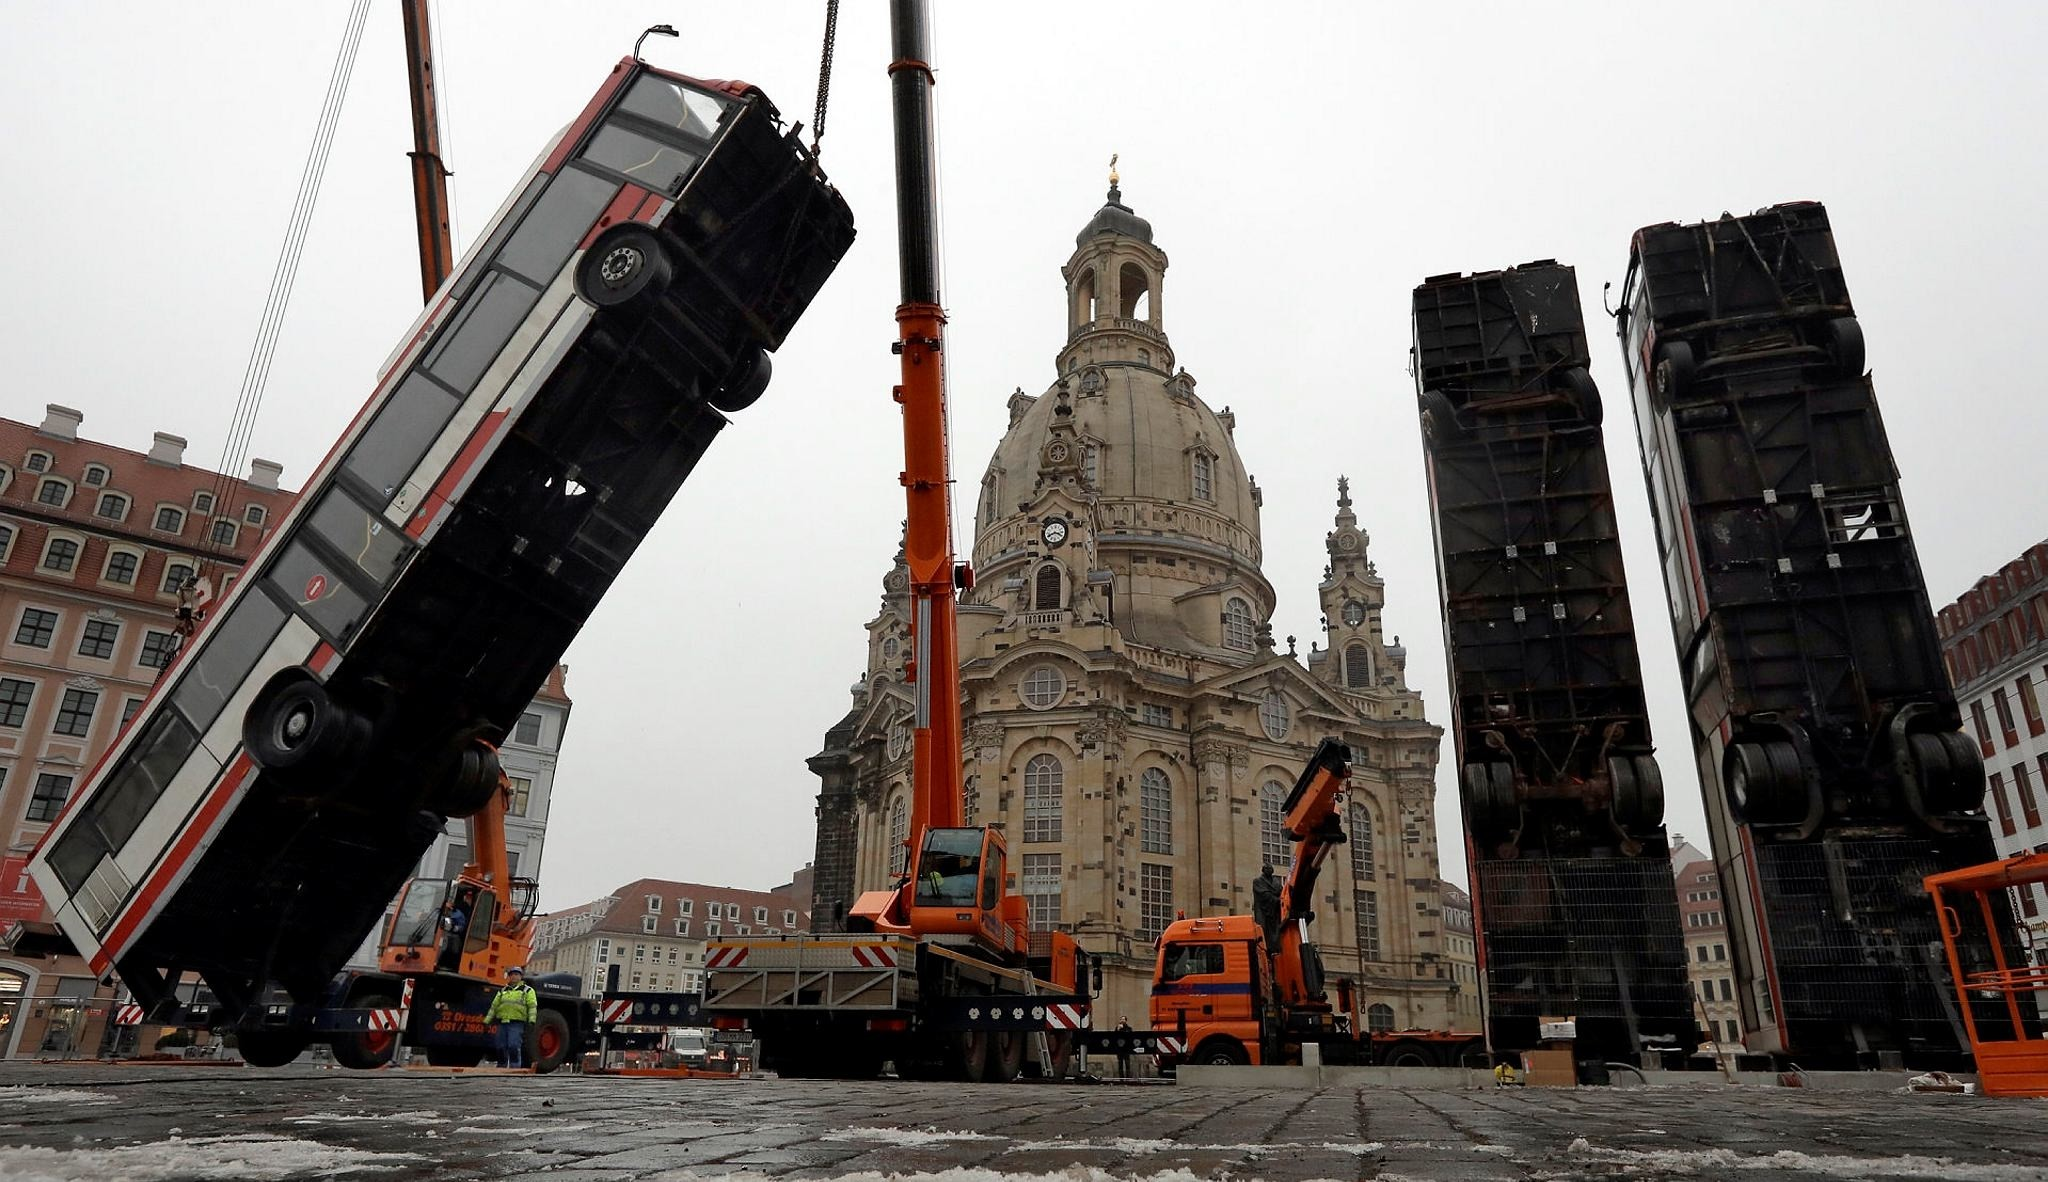 Three buses are positioned close to the 'Frauenkirche' church in Dresden, Germany, Monday, Feb. 6, 2017. Syrian artist Manaf Halbouni placed the three buses upright to evoke the suffering of civilians in the Syrian city of Aleppo. (AP Photo)